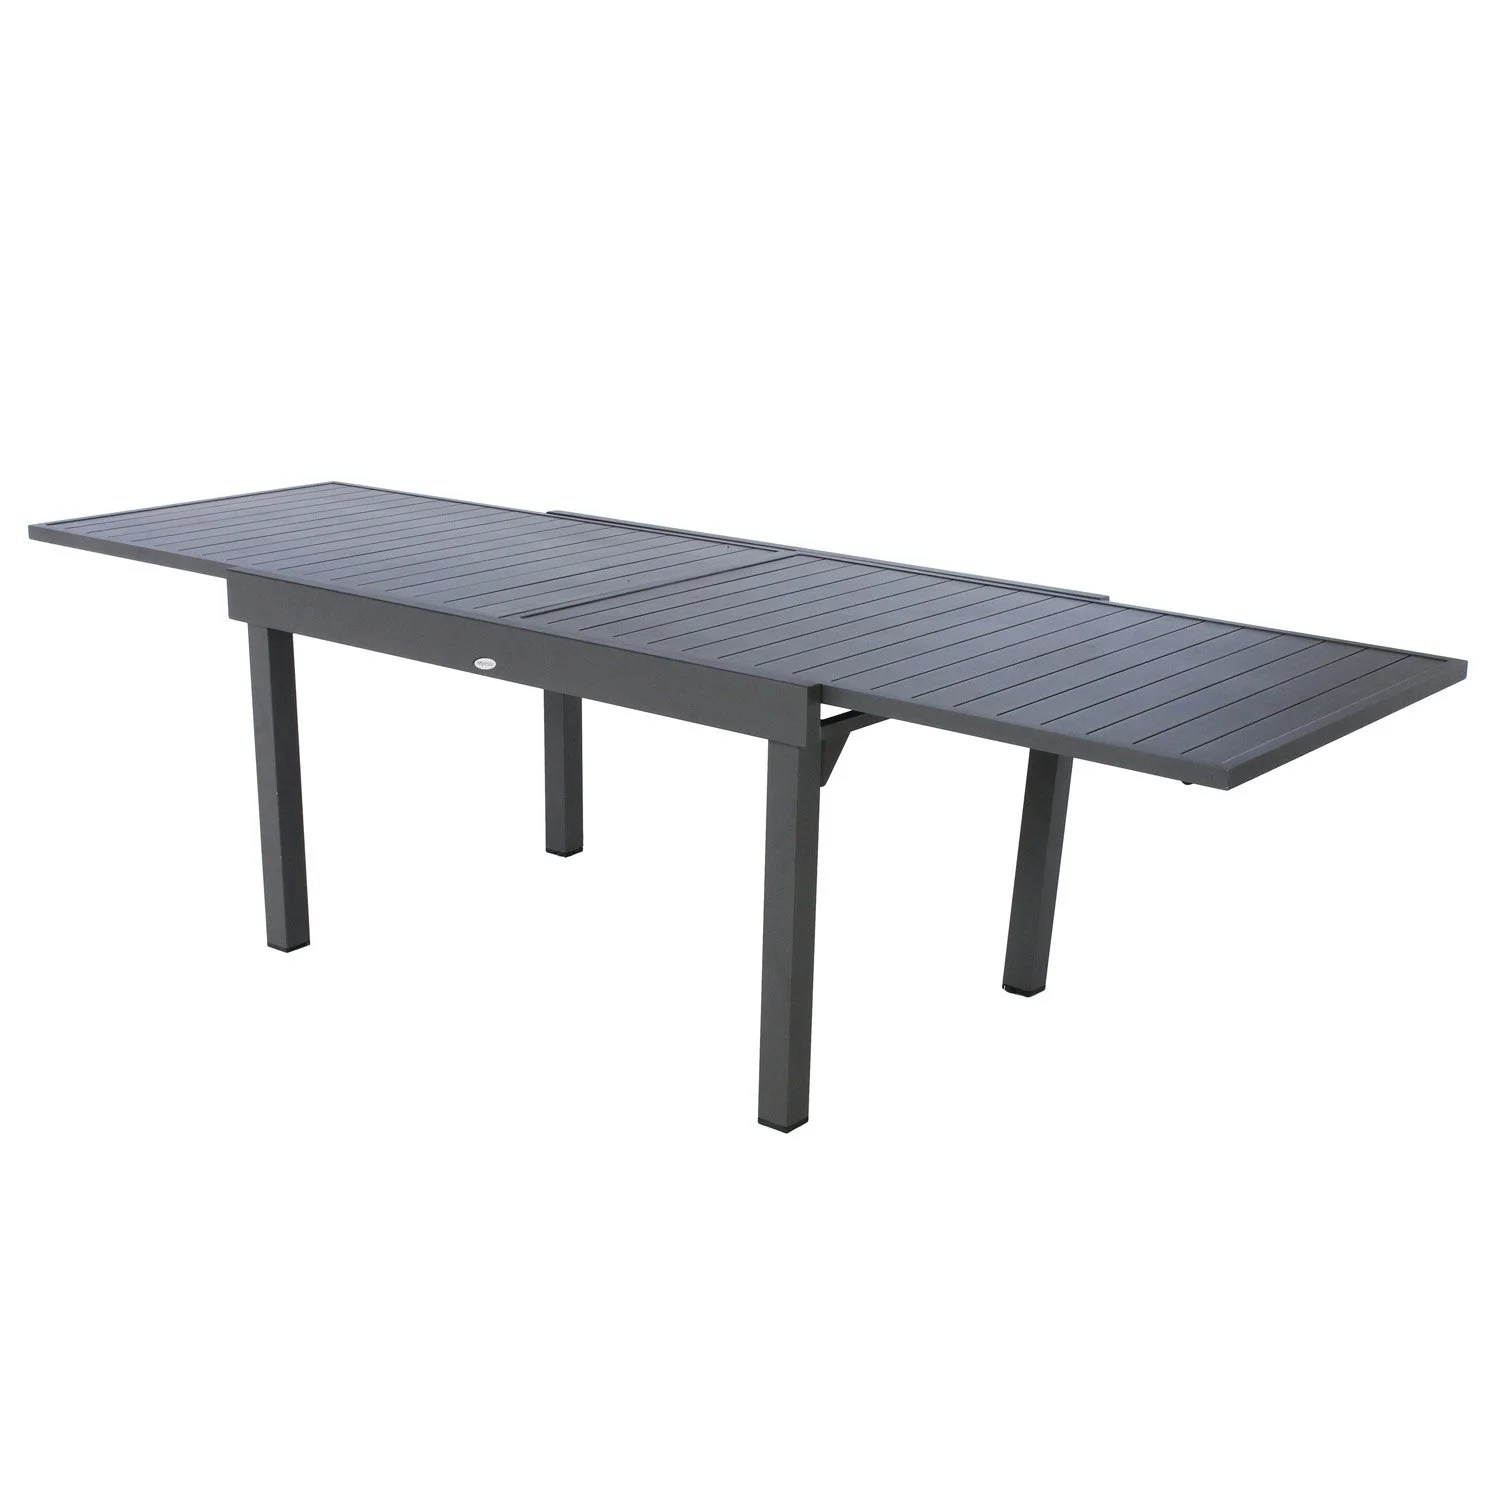 Table Et Chaise De Jardin Hesperide Table De Jardin Hesperide Piazza Rectangulaire Gris 10